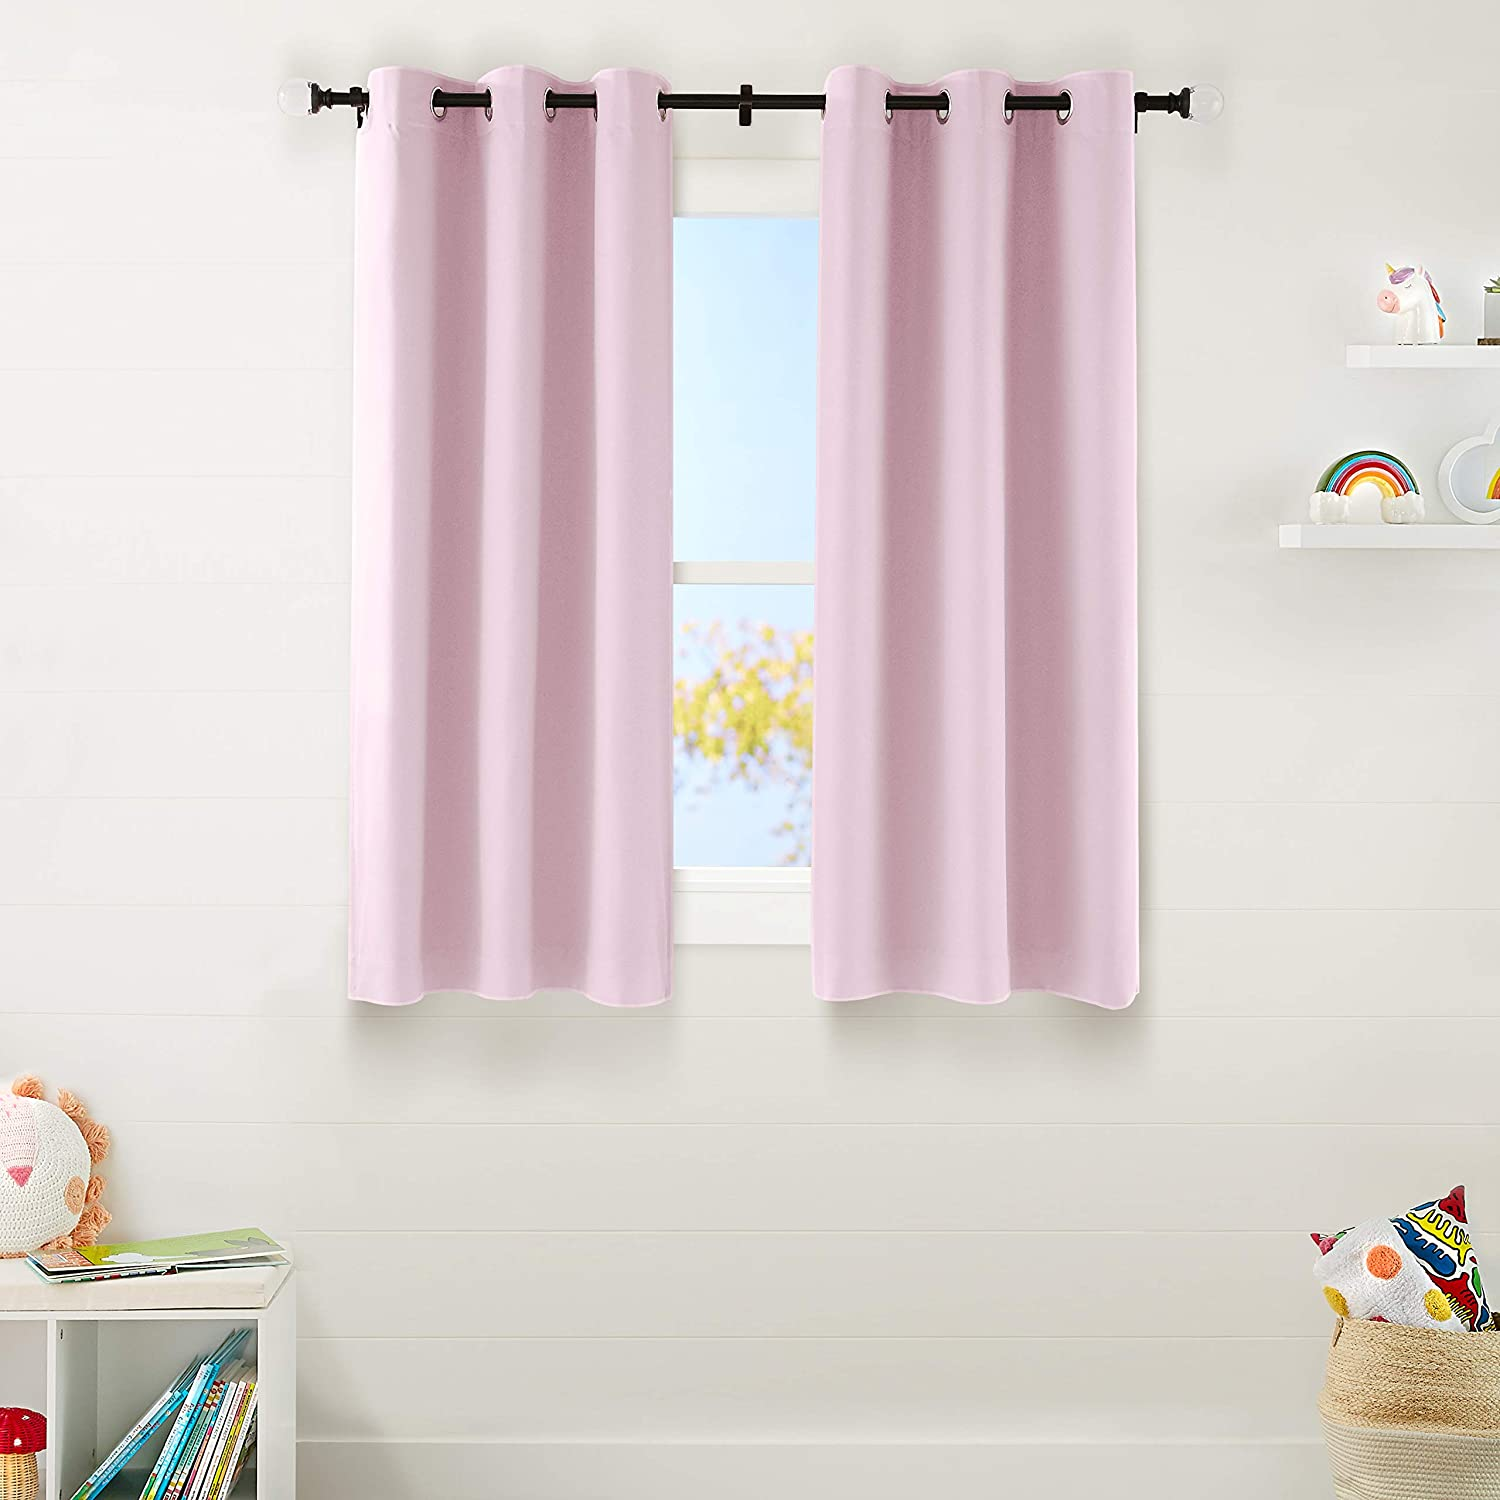 "AmazonBasics Kids Room Darkening Blackout Window Curtain Set with Grommets - 42"" x 63"", Light Pink"